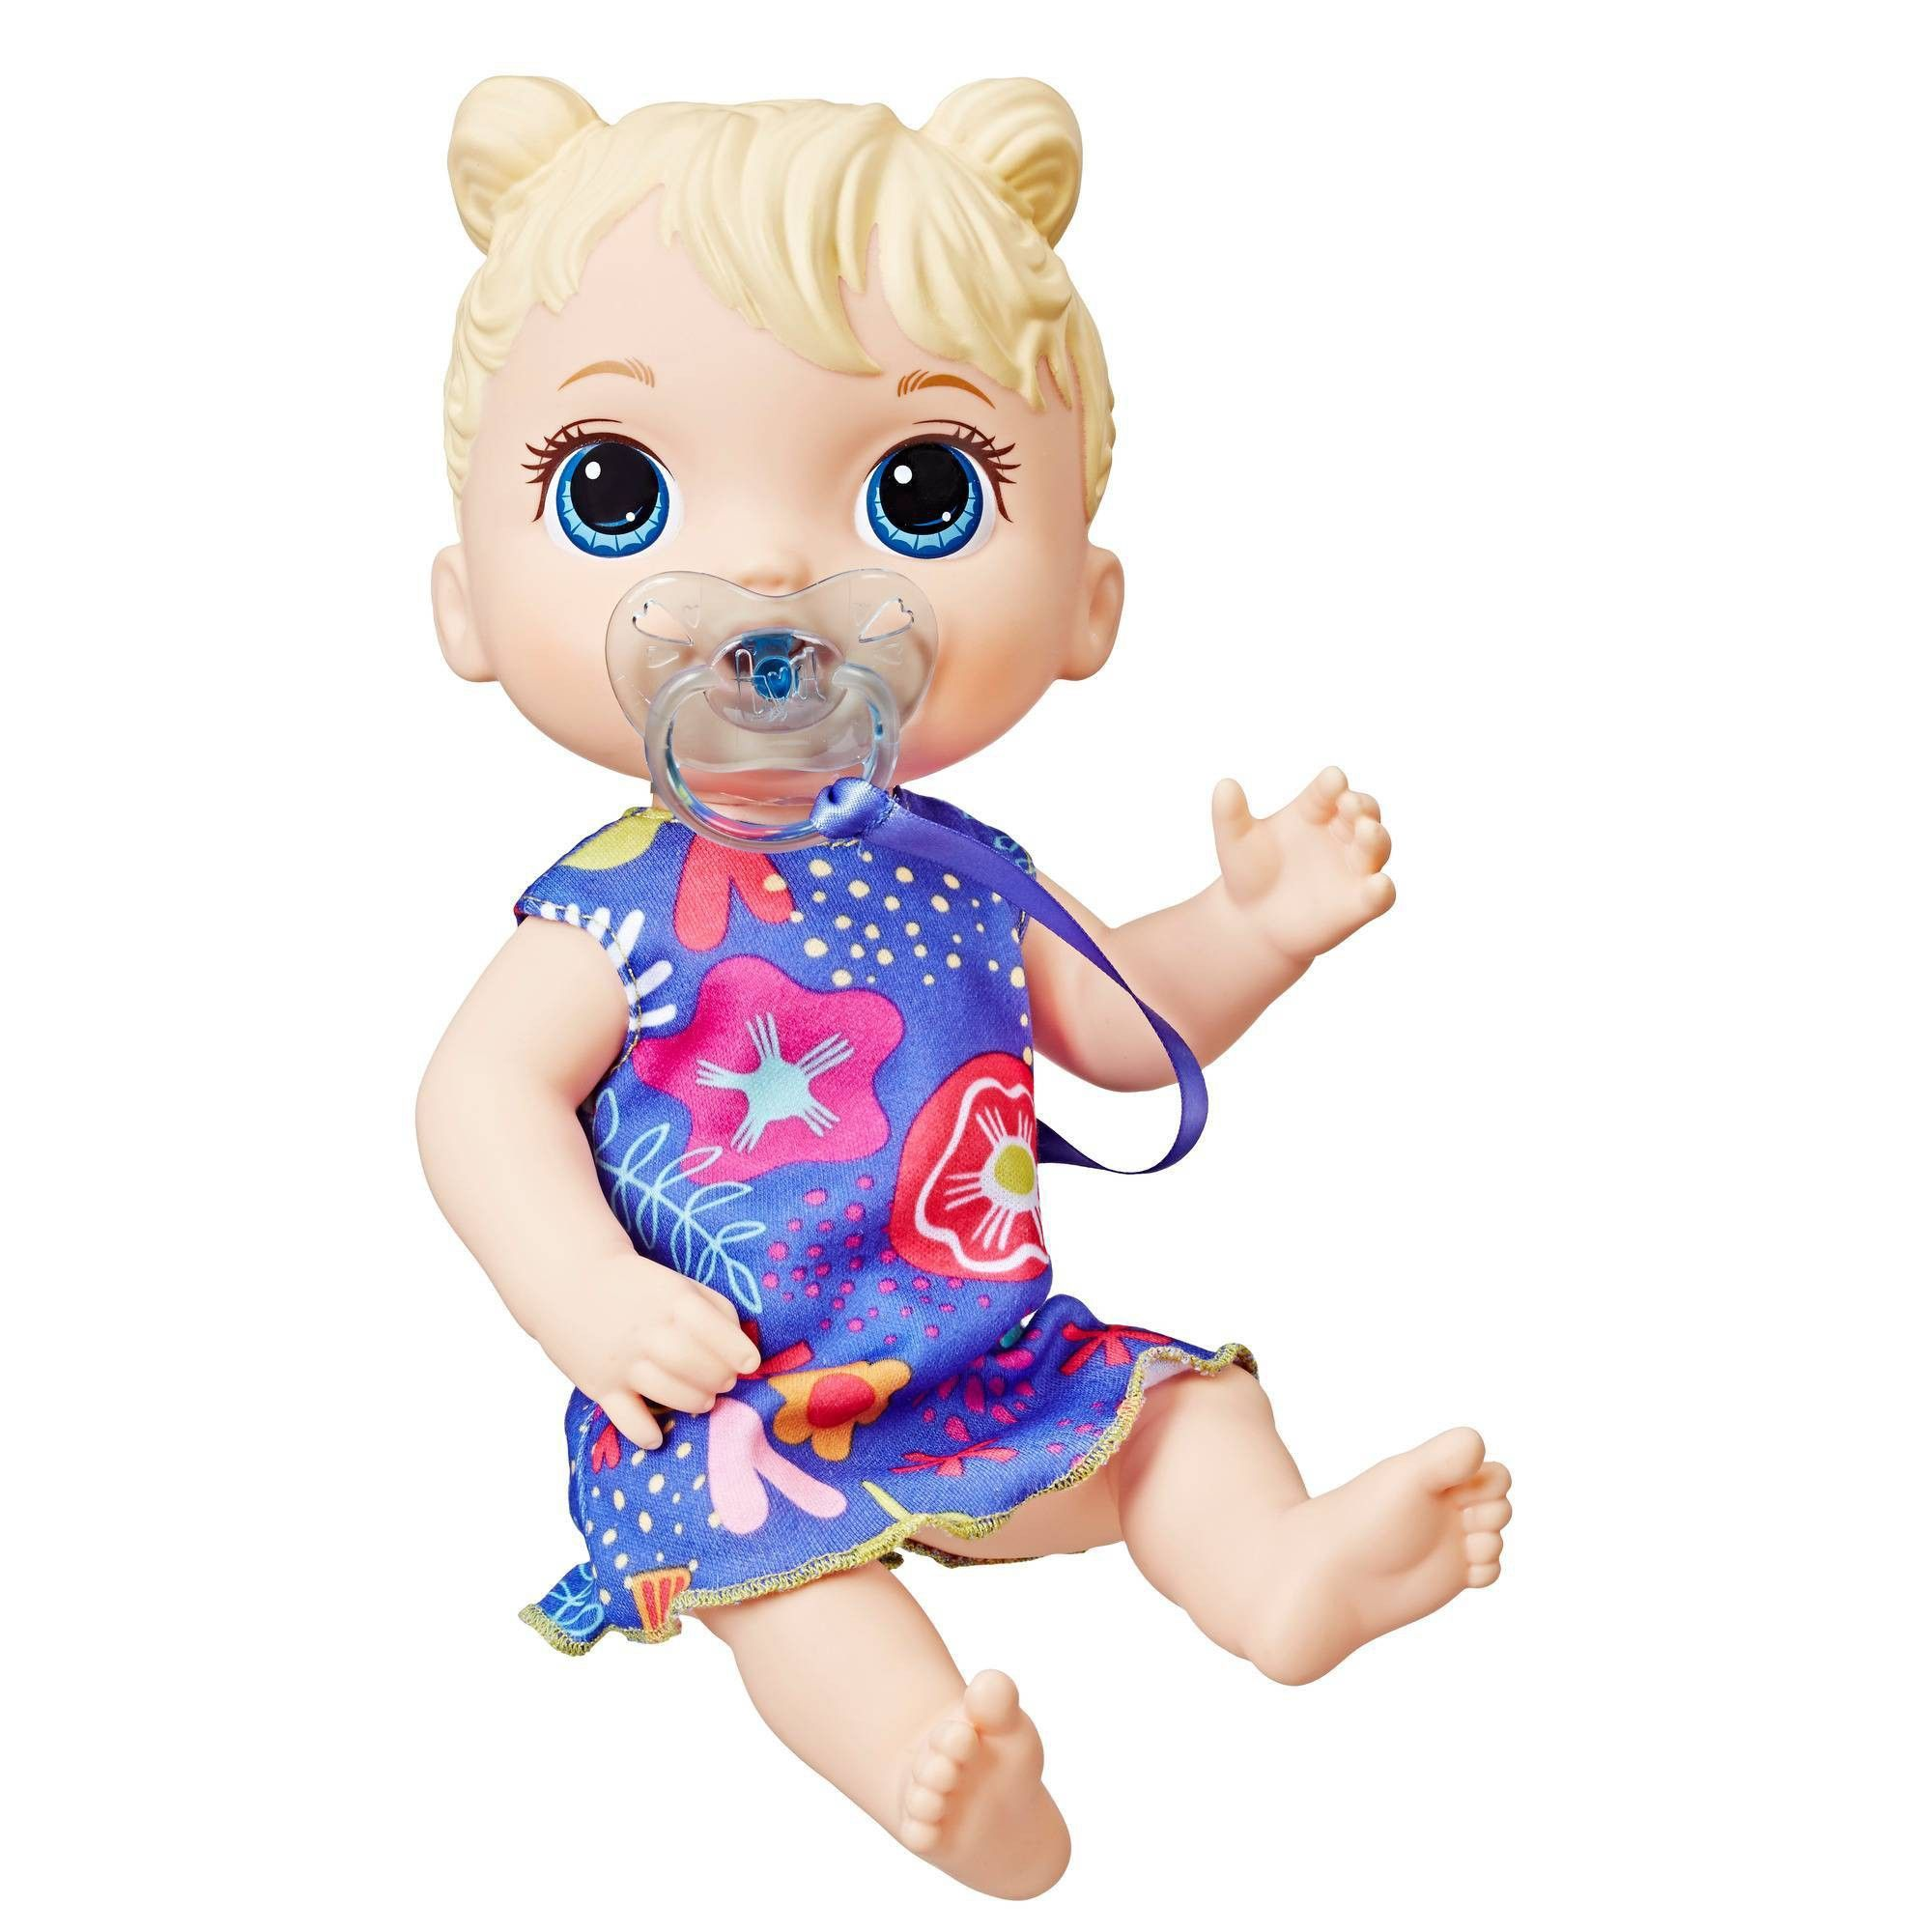 Baby Alive Baby Lil Sounds Interactive Blonde Hair Baby